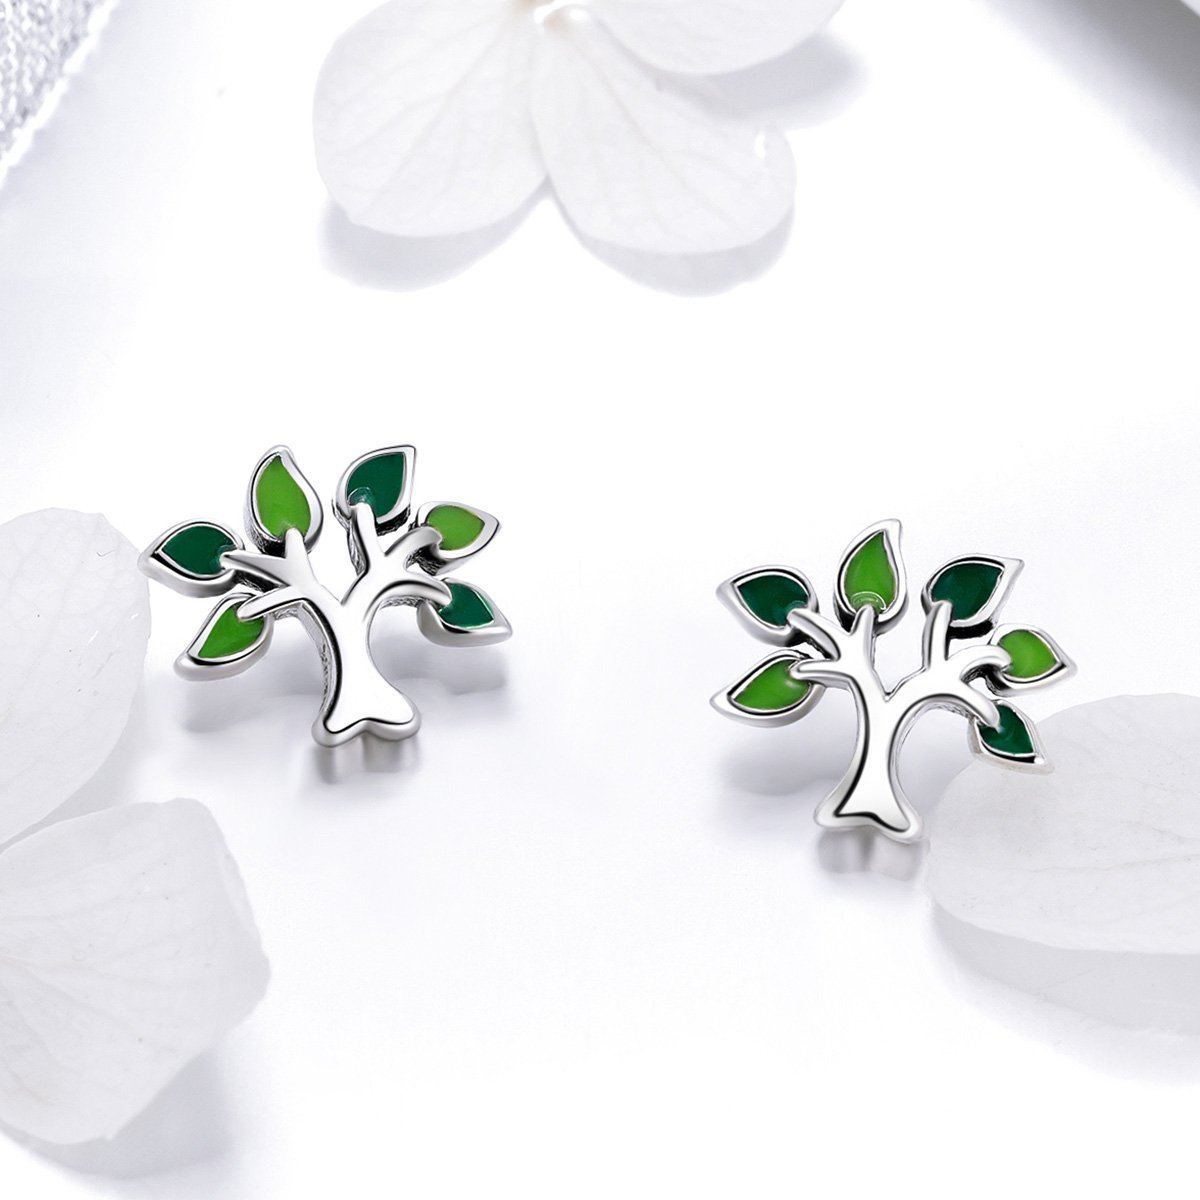 BISAER Tree of Life 925 Sterling Silver Stud Earrings with Green Enamel Leaves, Cute Post Stud Earring Hypoallergenic Jewelry for Women. by BISAER (Image #5)